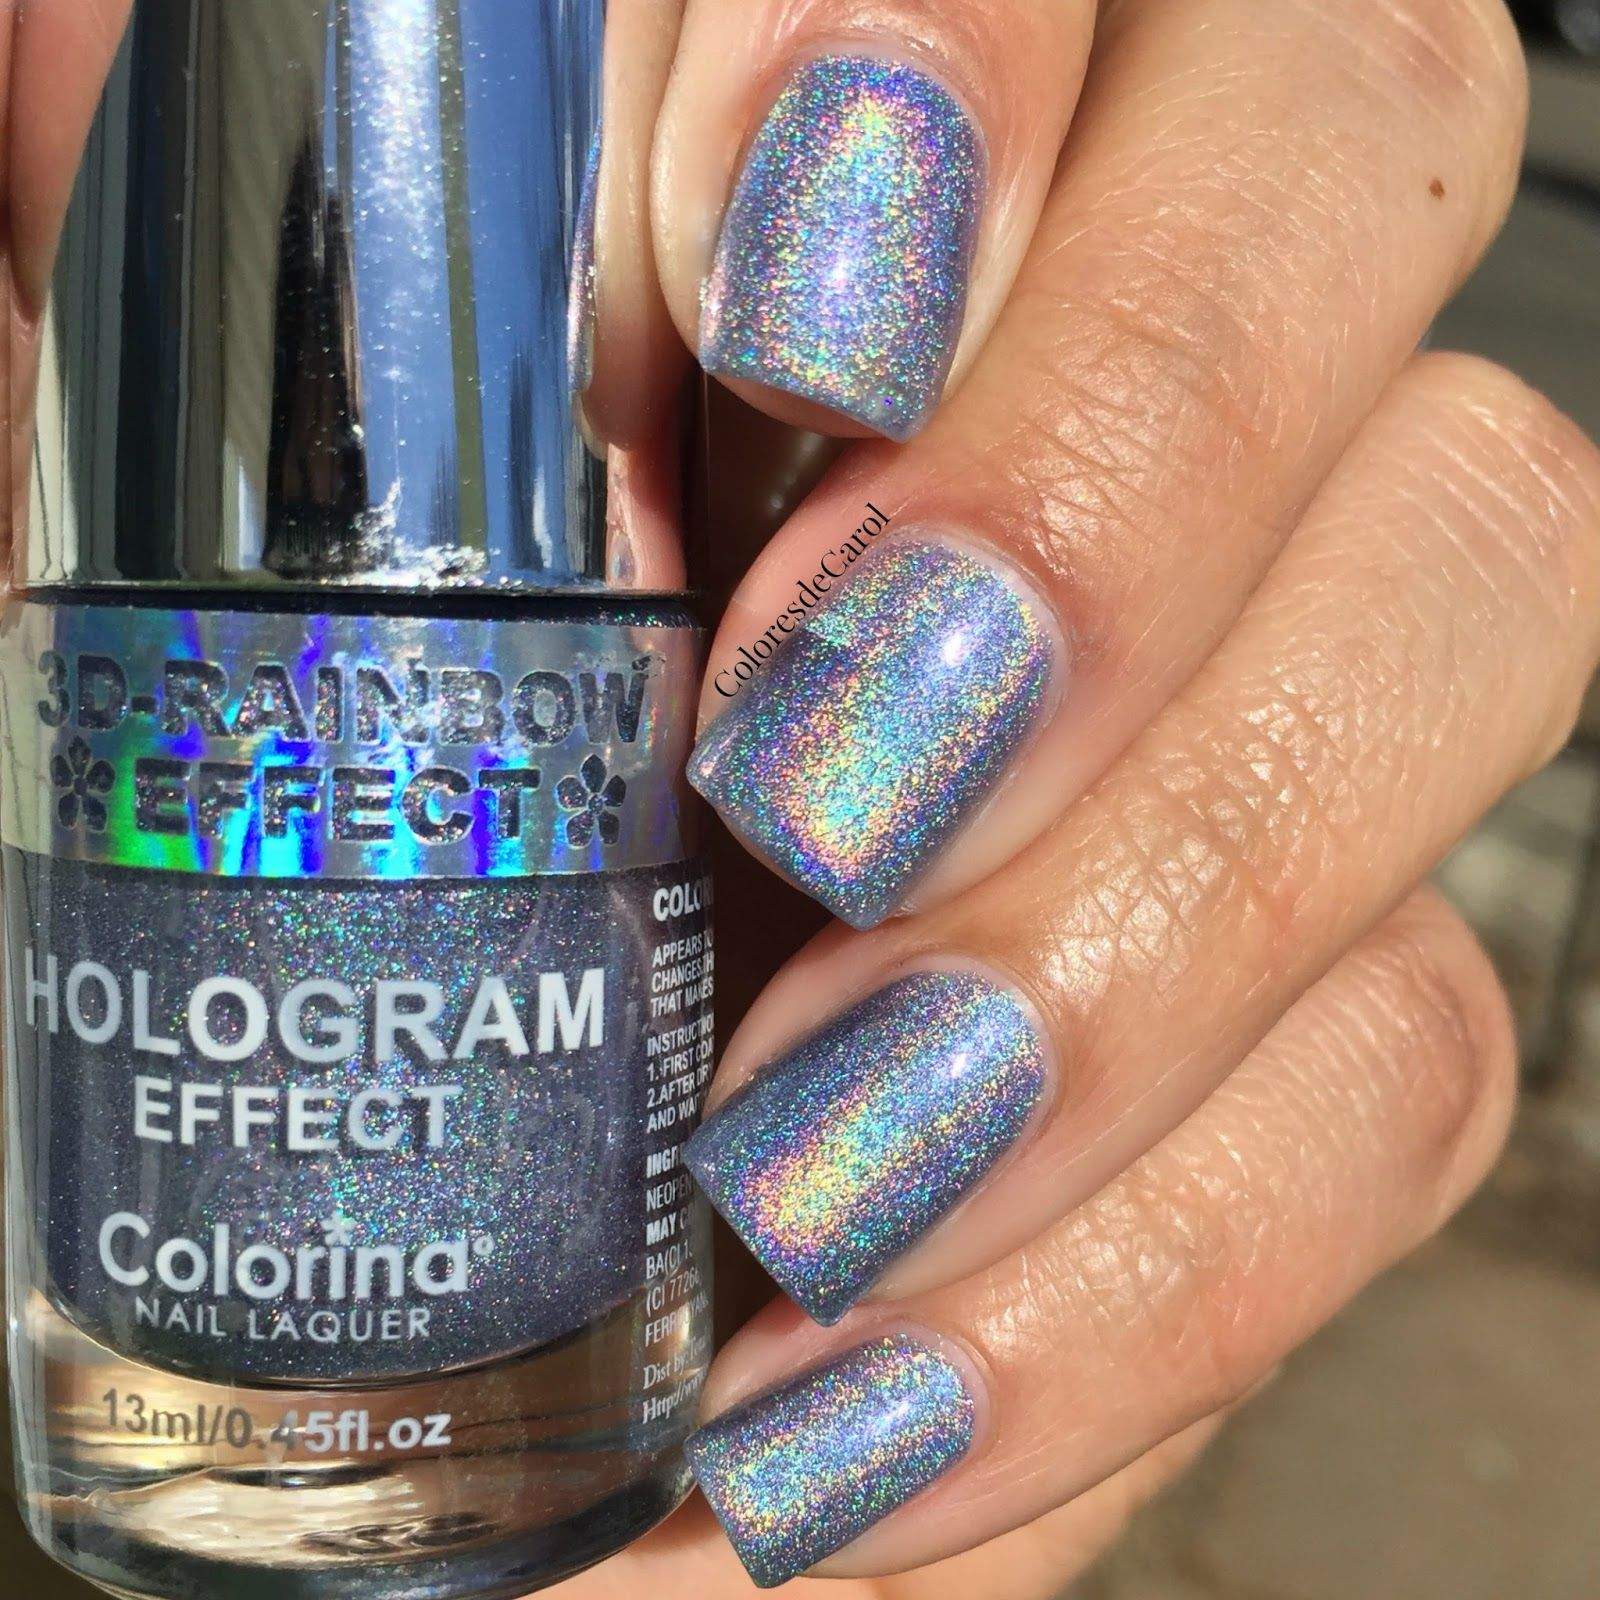 Colores De Carol Colorina Rainbow Effect Hologram Nail Polshes Swatches And Review